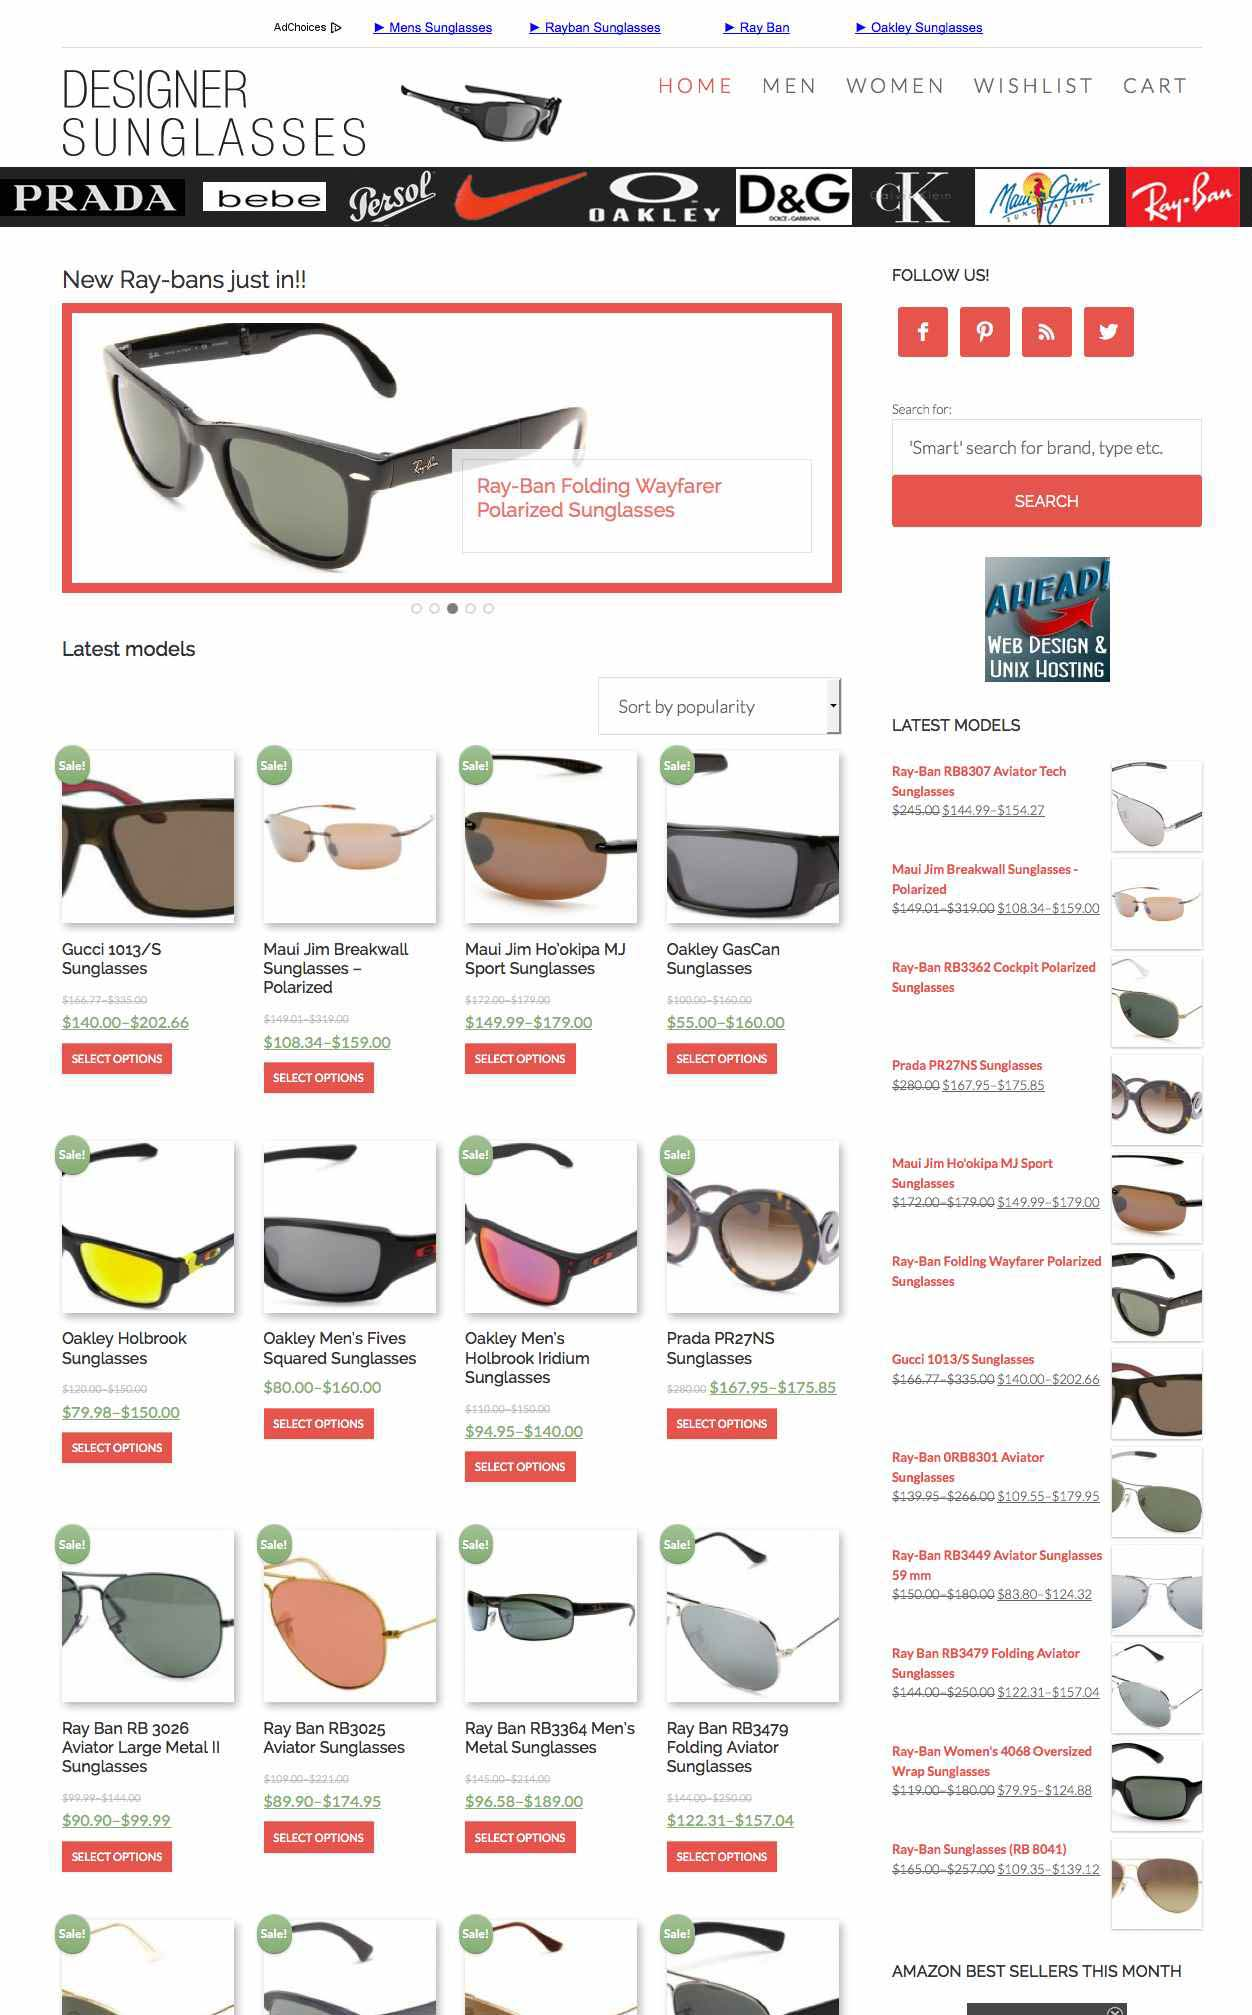 Sunglasses (Amazon store)